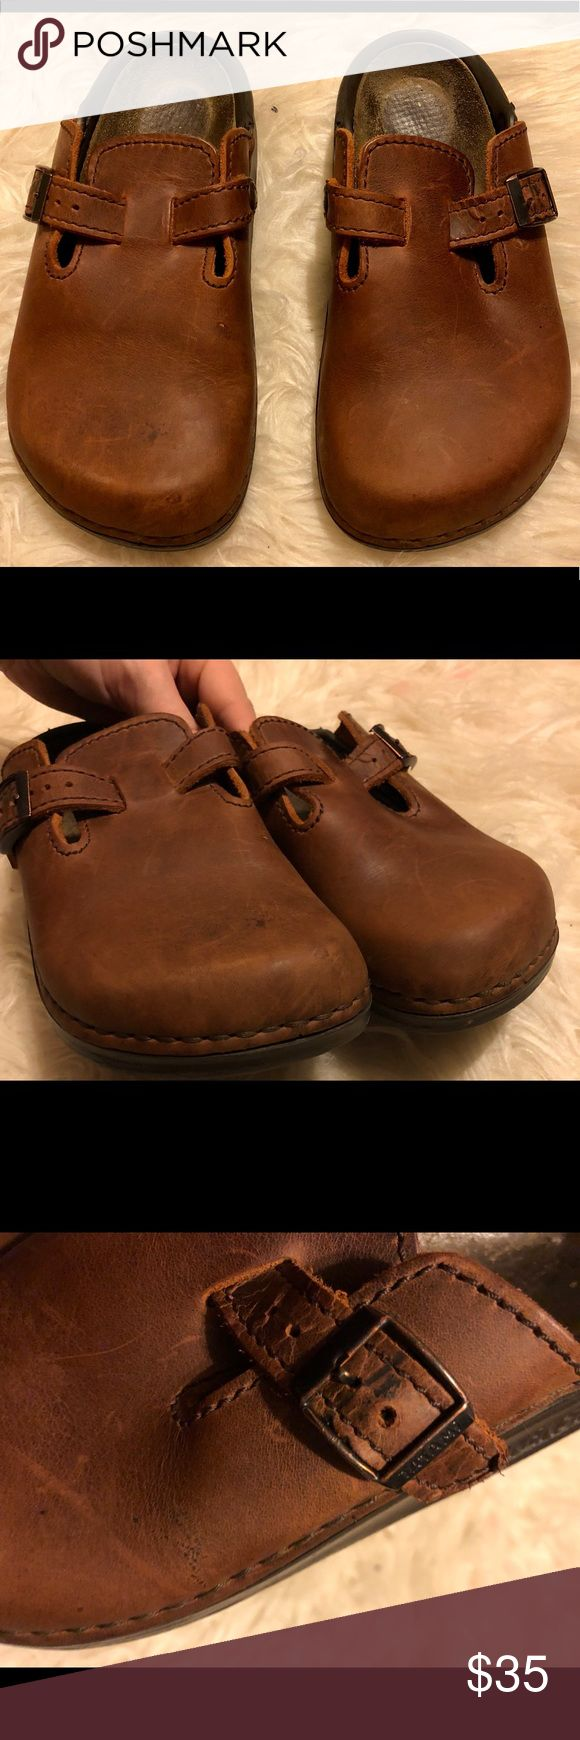 Birkenstock Tatami Brown Leather Mule Clogs Brand: Tatami (Birkenstock) Size: Women's 5 Color: brown  Style: Leather clog Condition: Preowned (some marks on buckle straps and on side of toe area, see photos) Birkenstock Shoes Mules & Clogs